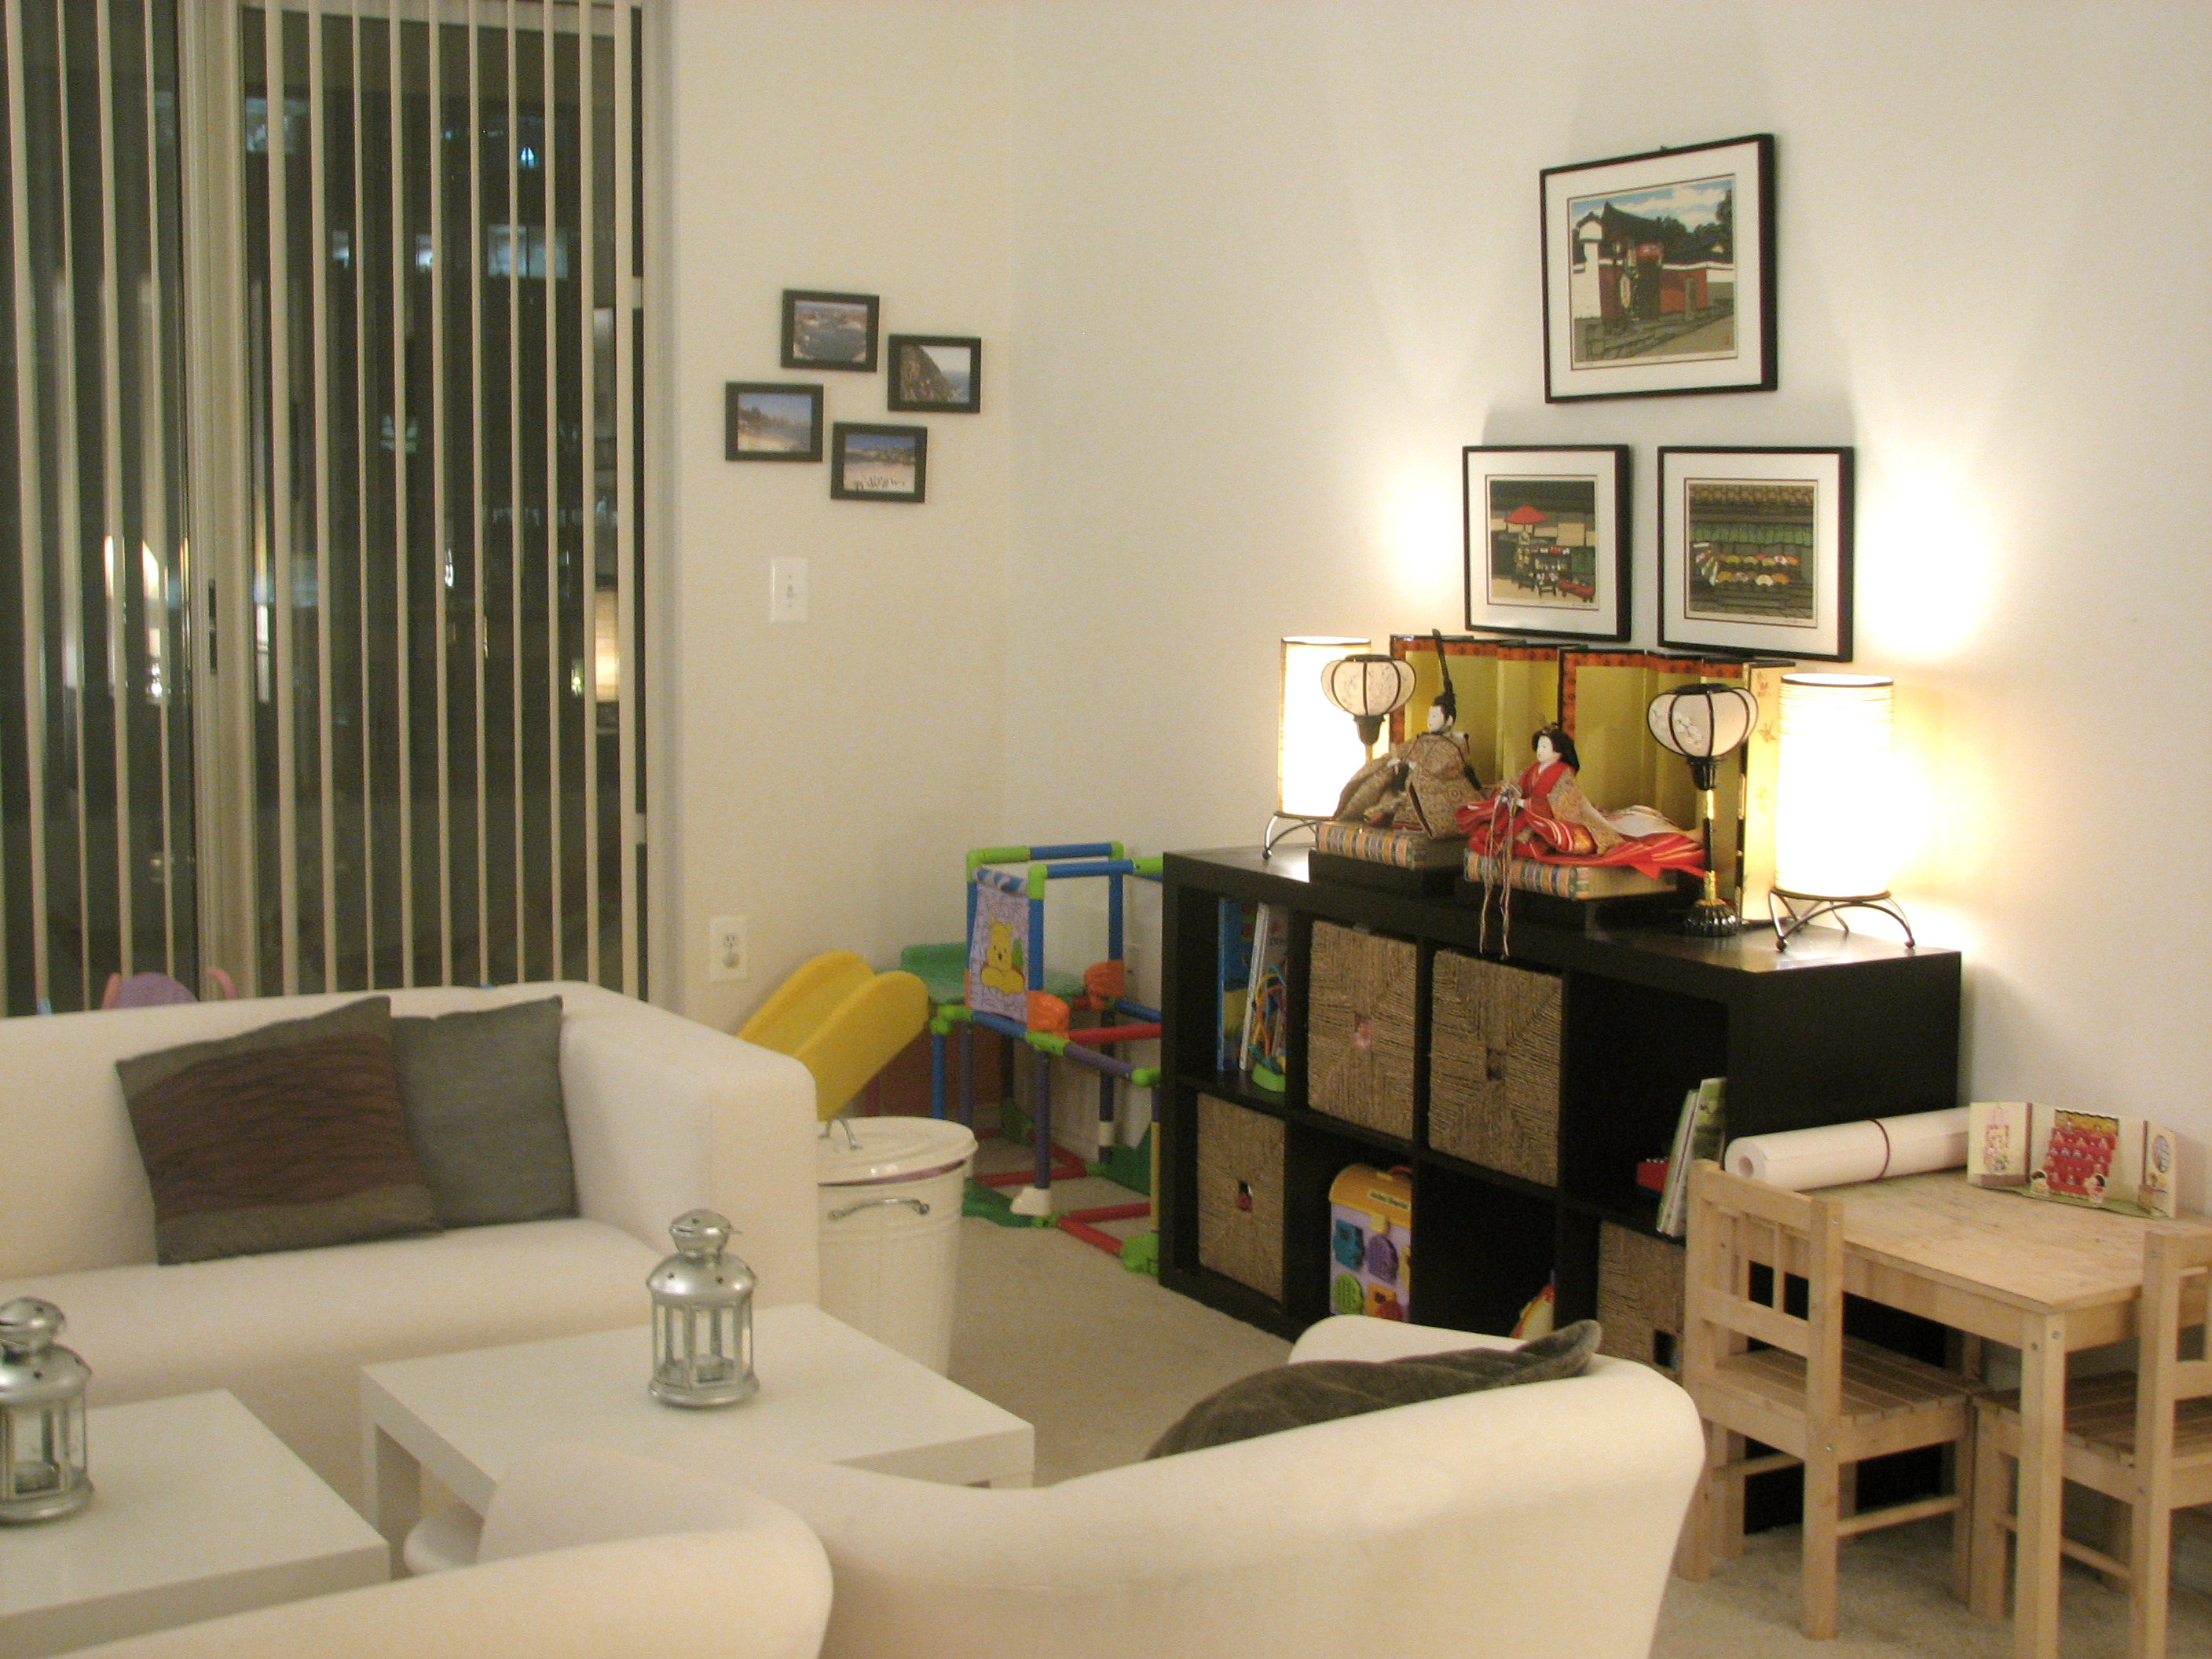 Apartment Solution ☆ living room + play area - Chuzai ☆ Living